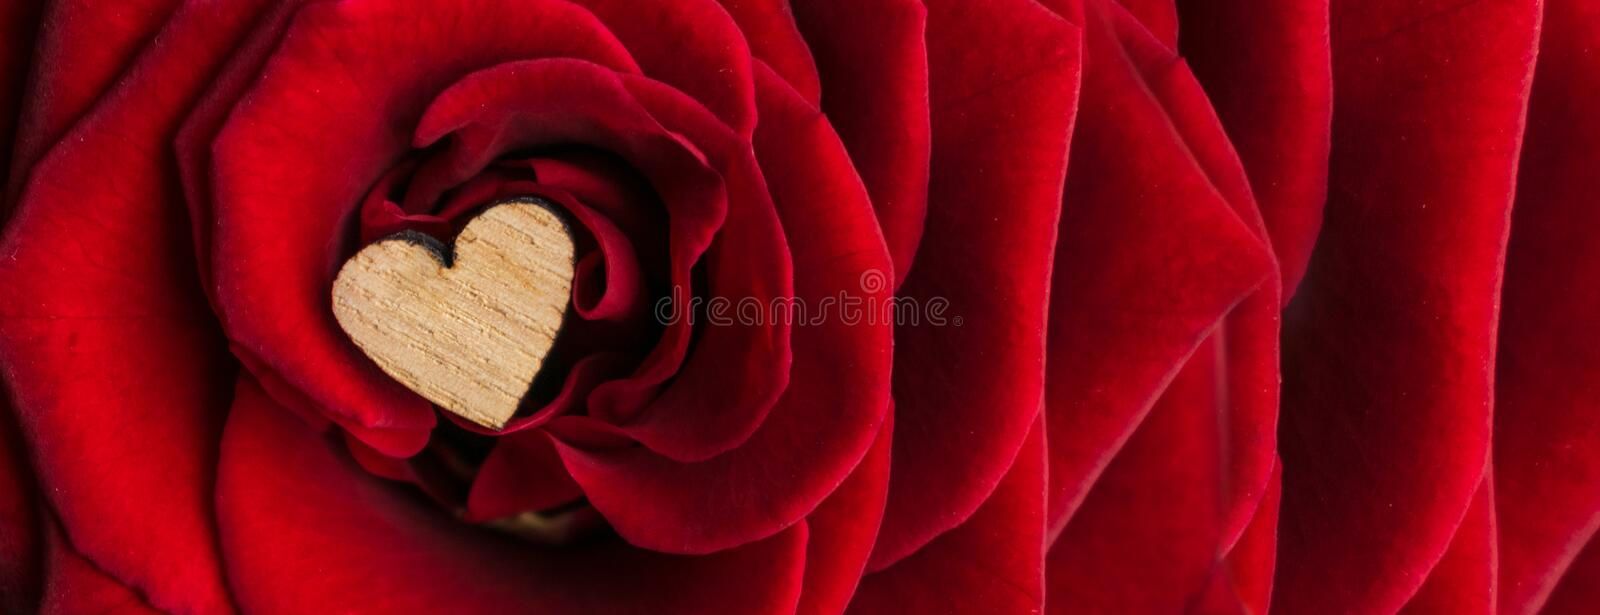 A small wooden heart in the middle of the petals of a luxurious red velvet rose. Elegant deluxe red rose banner background with a stock photos